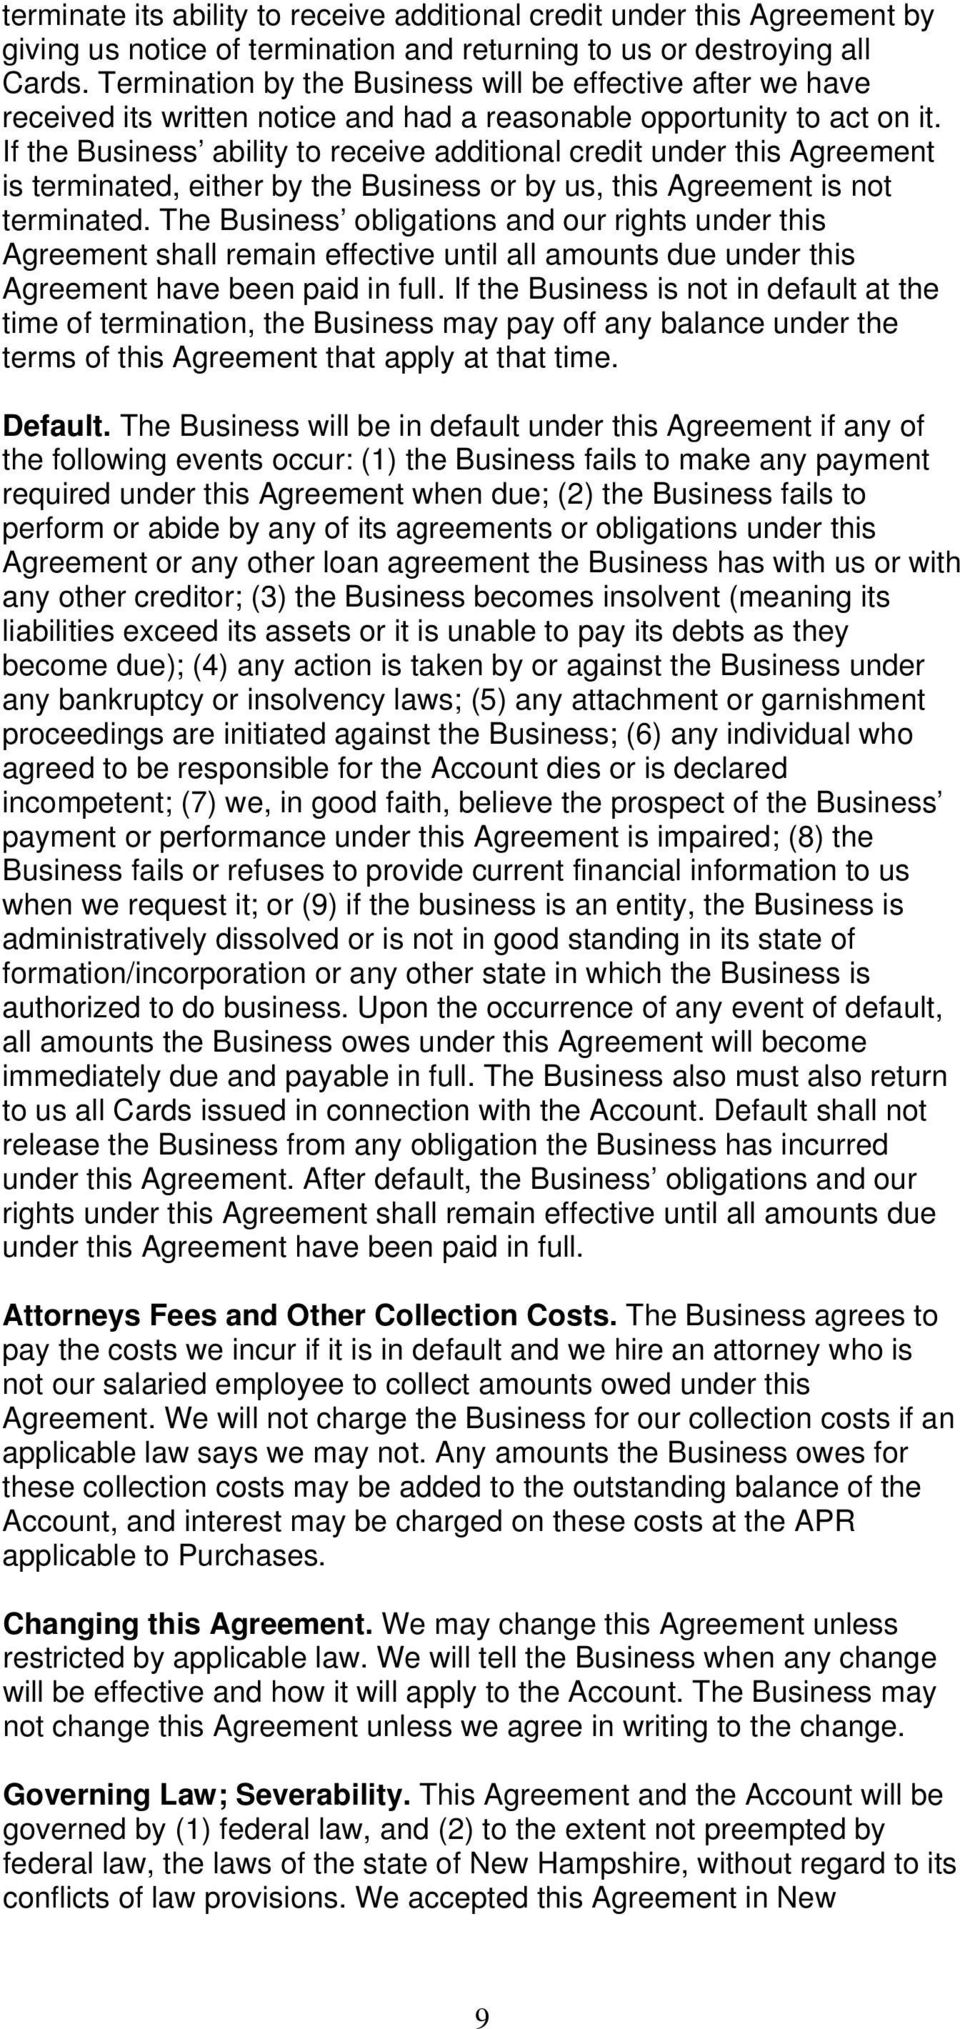 If the Business ability to receive additional credit under this Agreement is terminated, either by the Business or by us, this Agreement is not terminated.